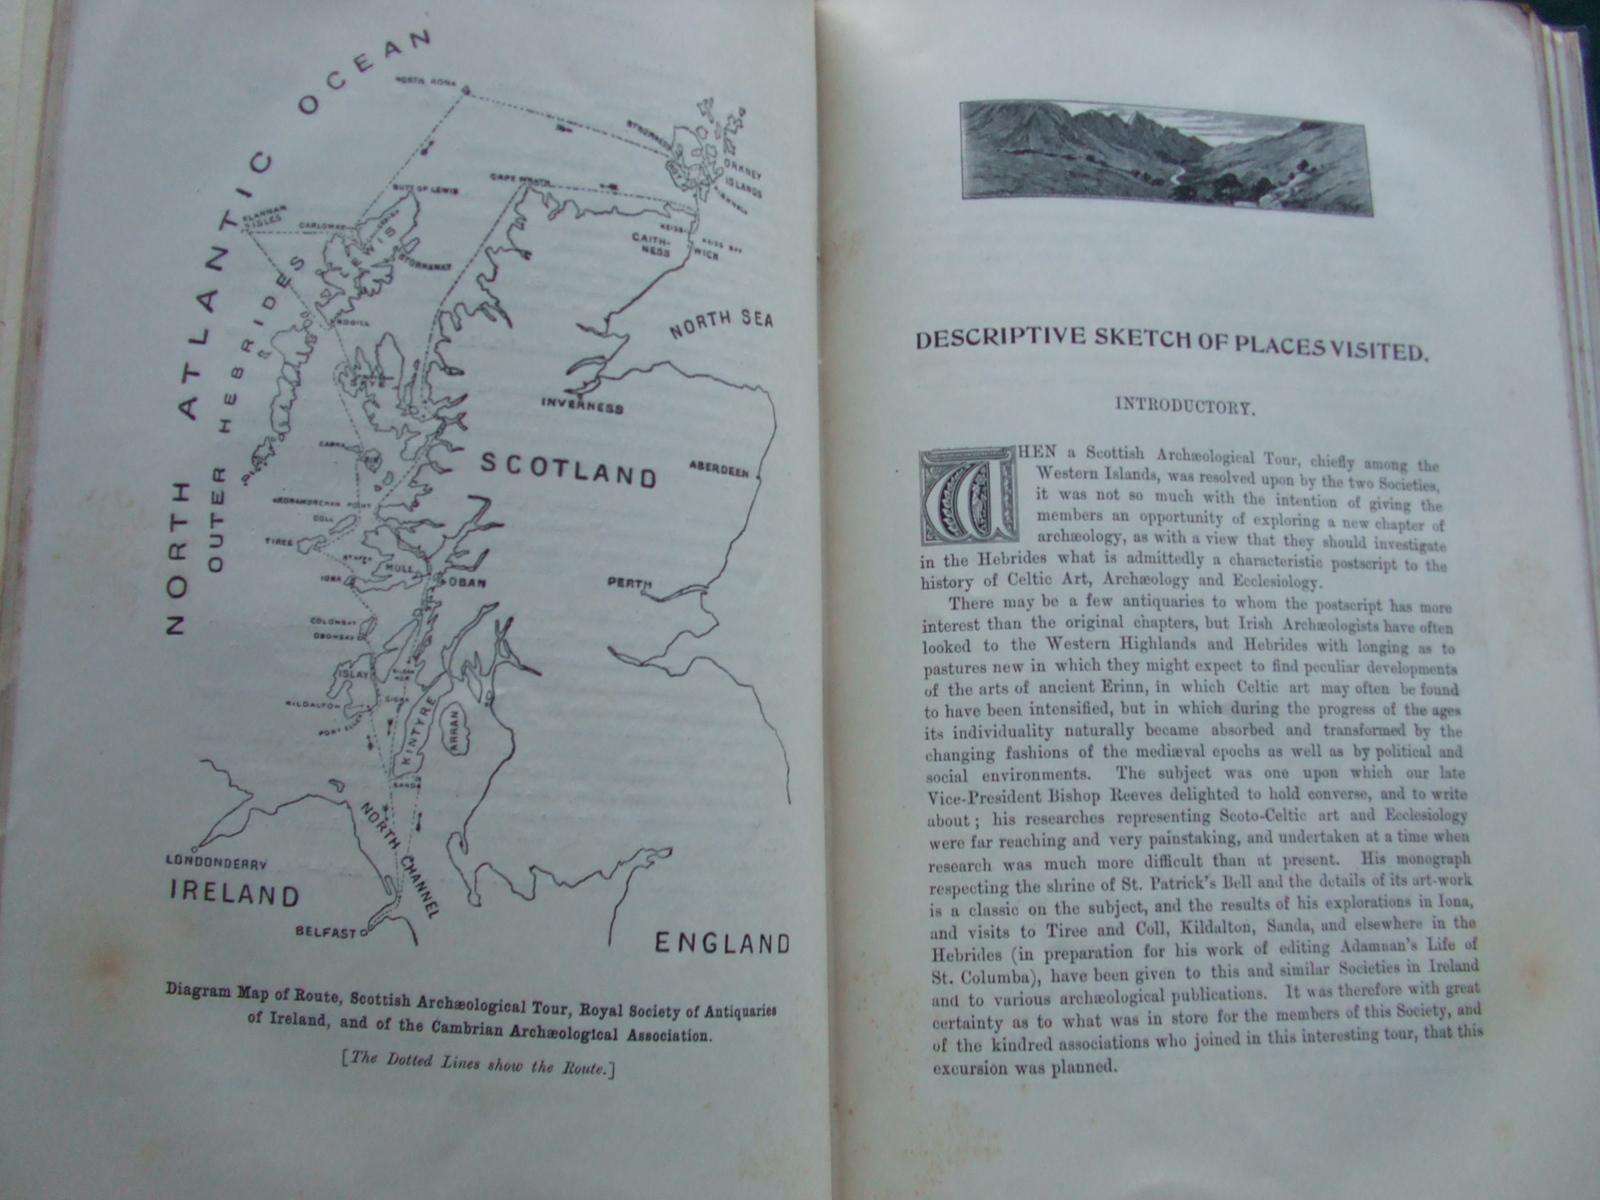 Image for Report of the Excursion of the Cambrian Archaeological Association In Connexion With The Royal Society of Antiquaries of Ireland, to the Western Islands of Scotland, Orkney, and Caithness, June 1899.